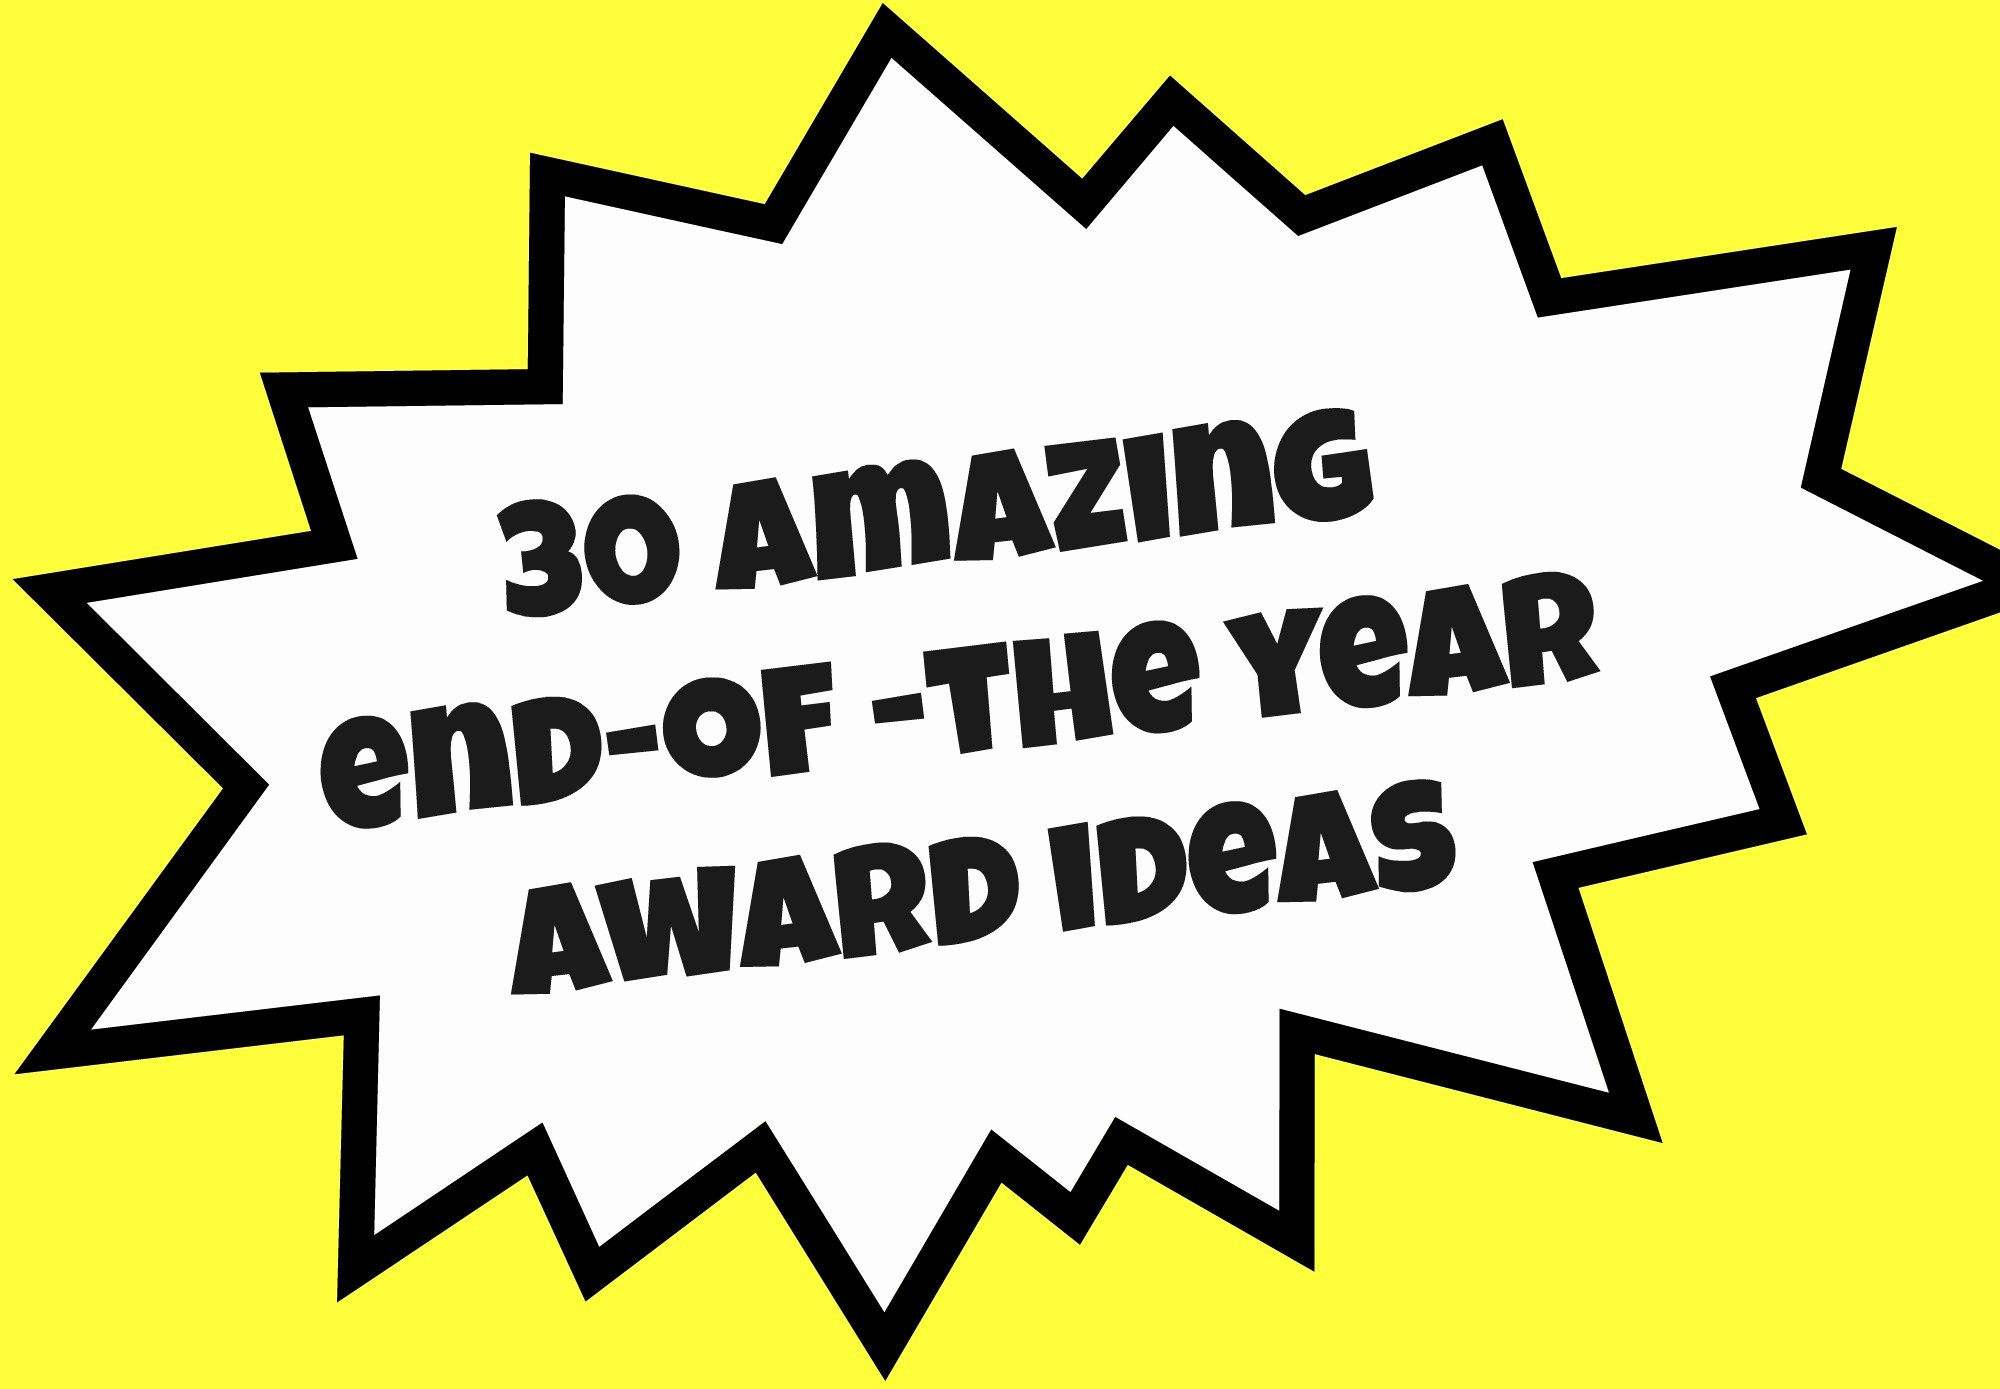 End Of Season Award Ideas Inspirational 30 Amazing End Of the Year Award Ideas – Teacher Created Tips